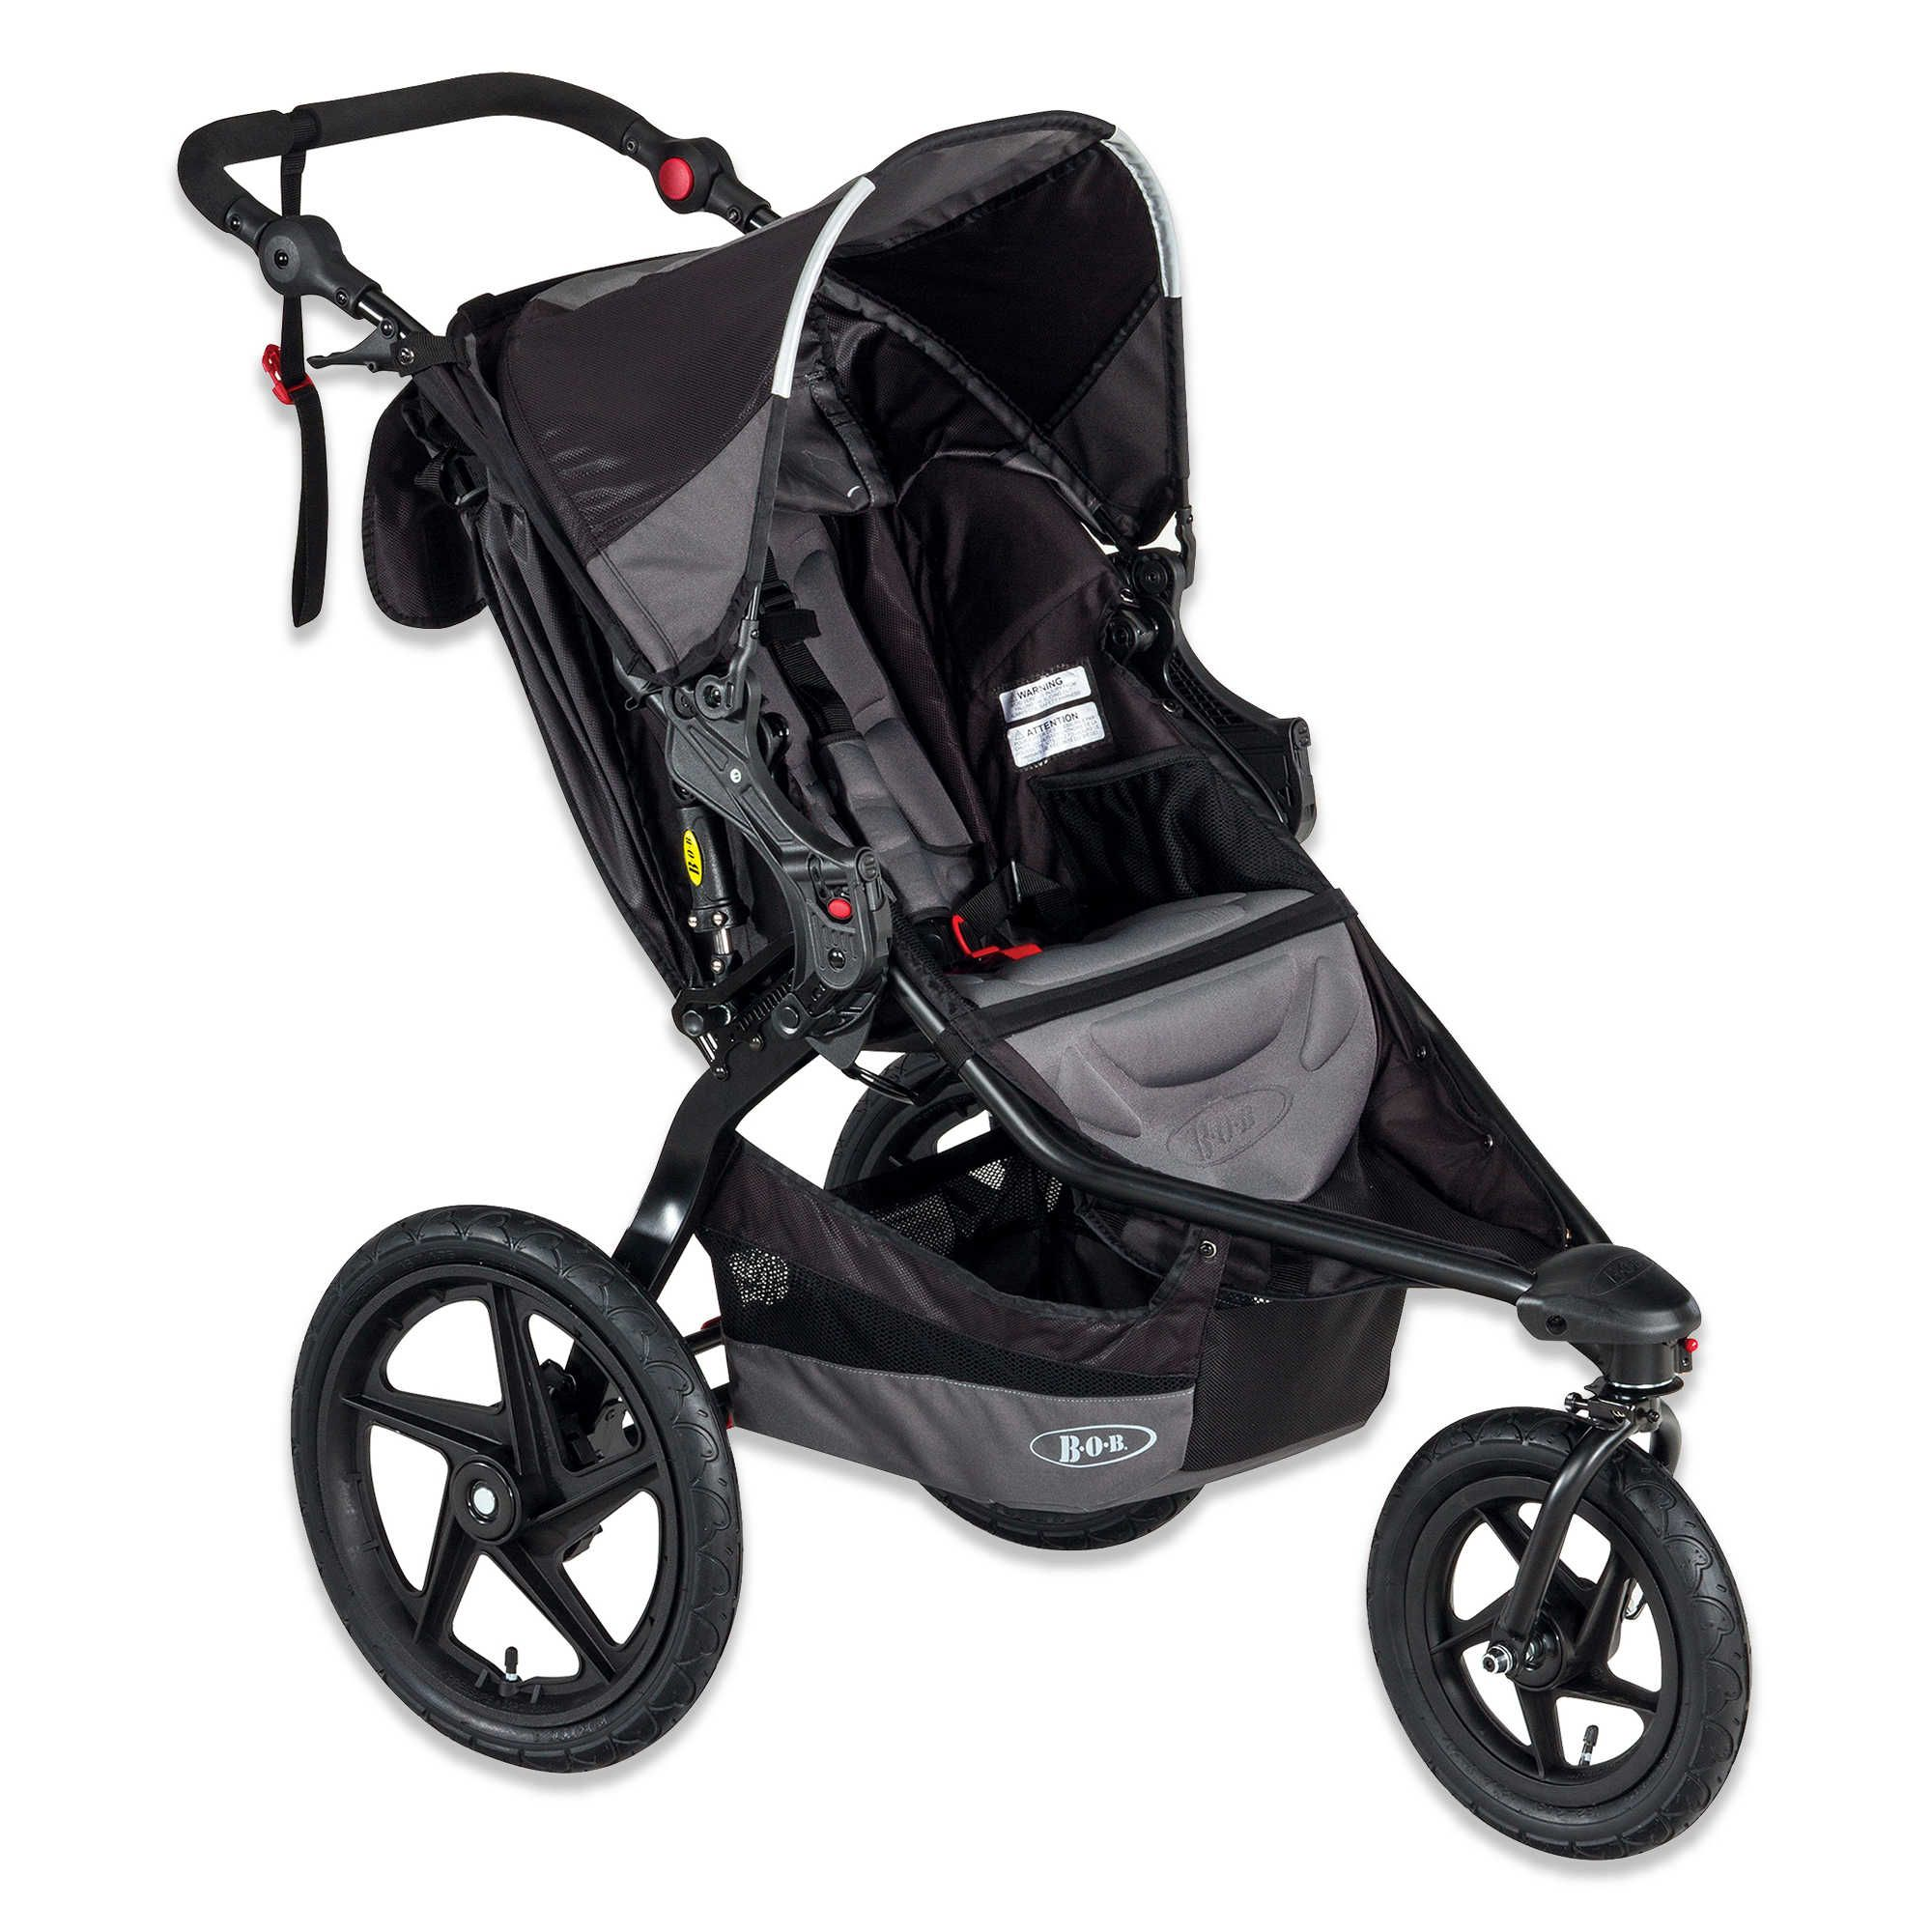 The BOB Revolution flex stroller with the latest innovative features is perfect for any sport experience The Revolution flex stroller has a height